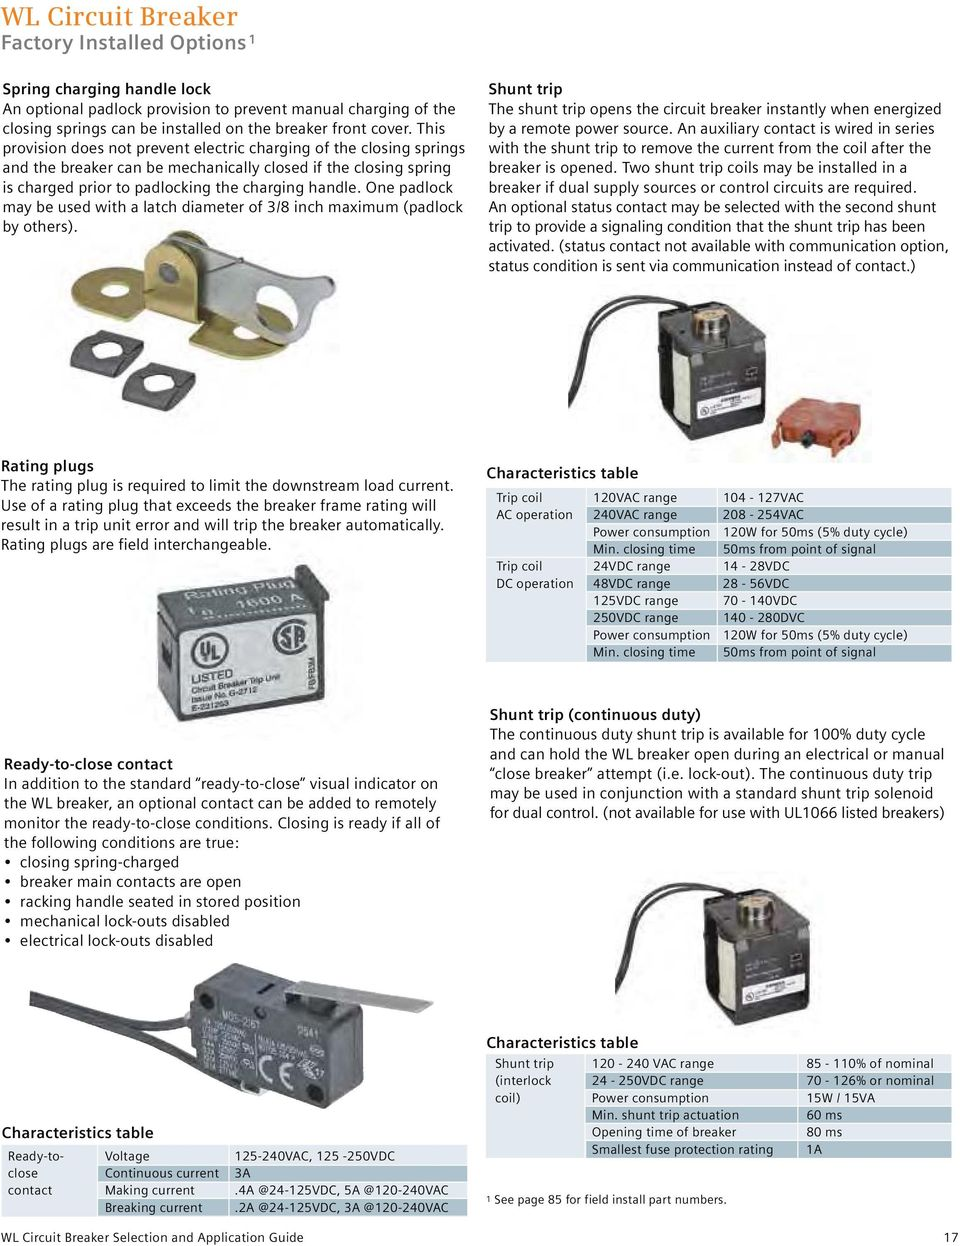 Selection And Application Guide Low Voltage Wl Circuit Breakers Automatic Mains Disconnect One Padlock May Be Used With A Latch Diameter Of 3 8 Inch Maximum